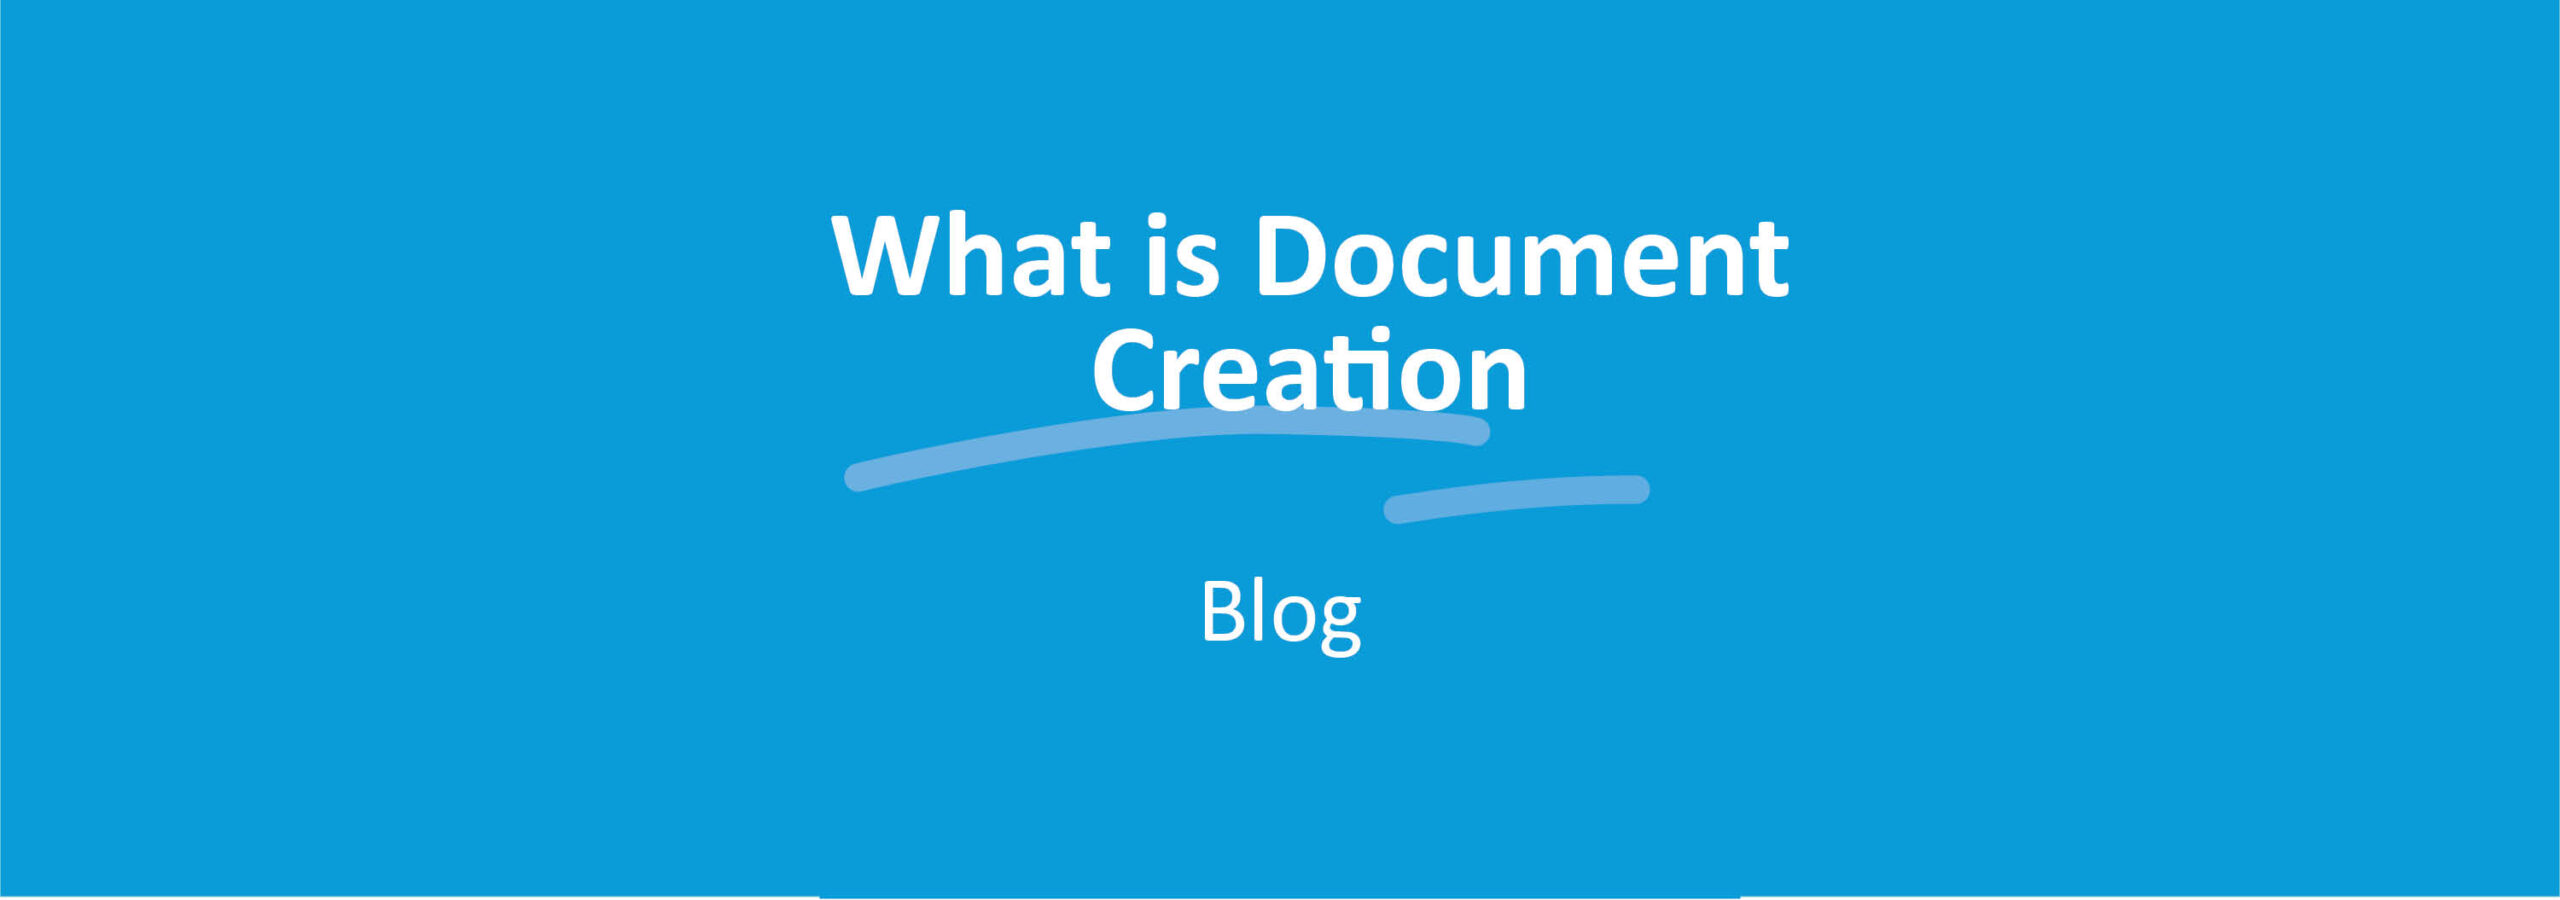 What is Document Creation